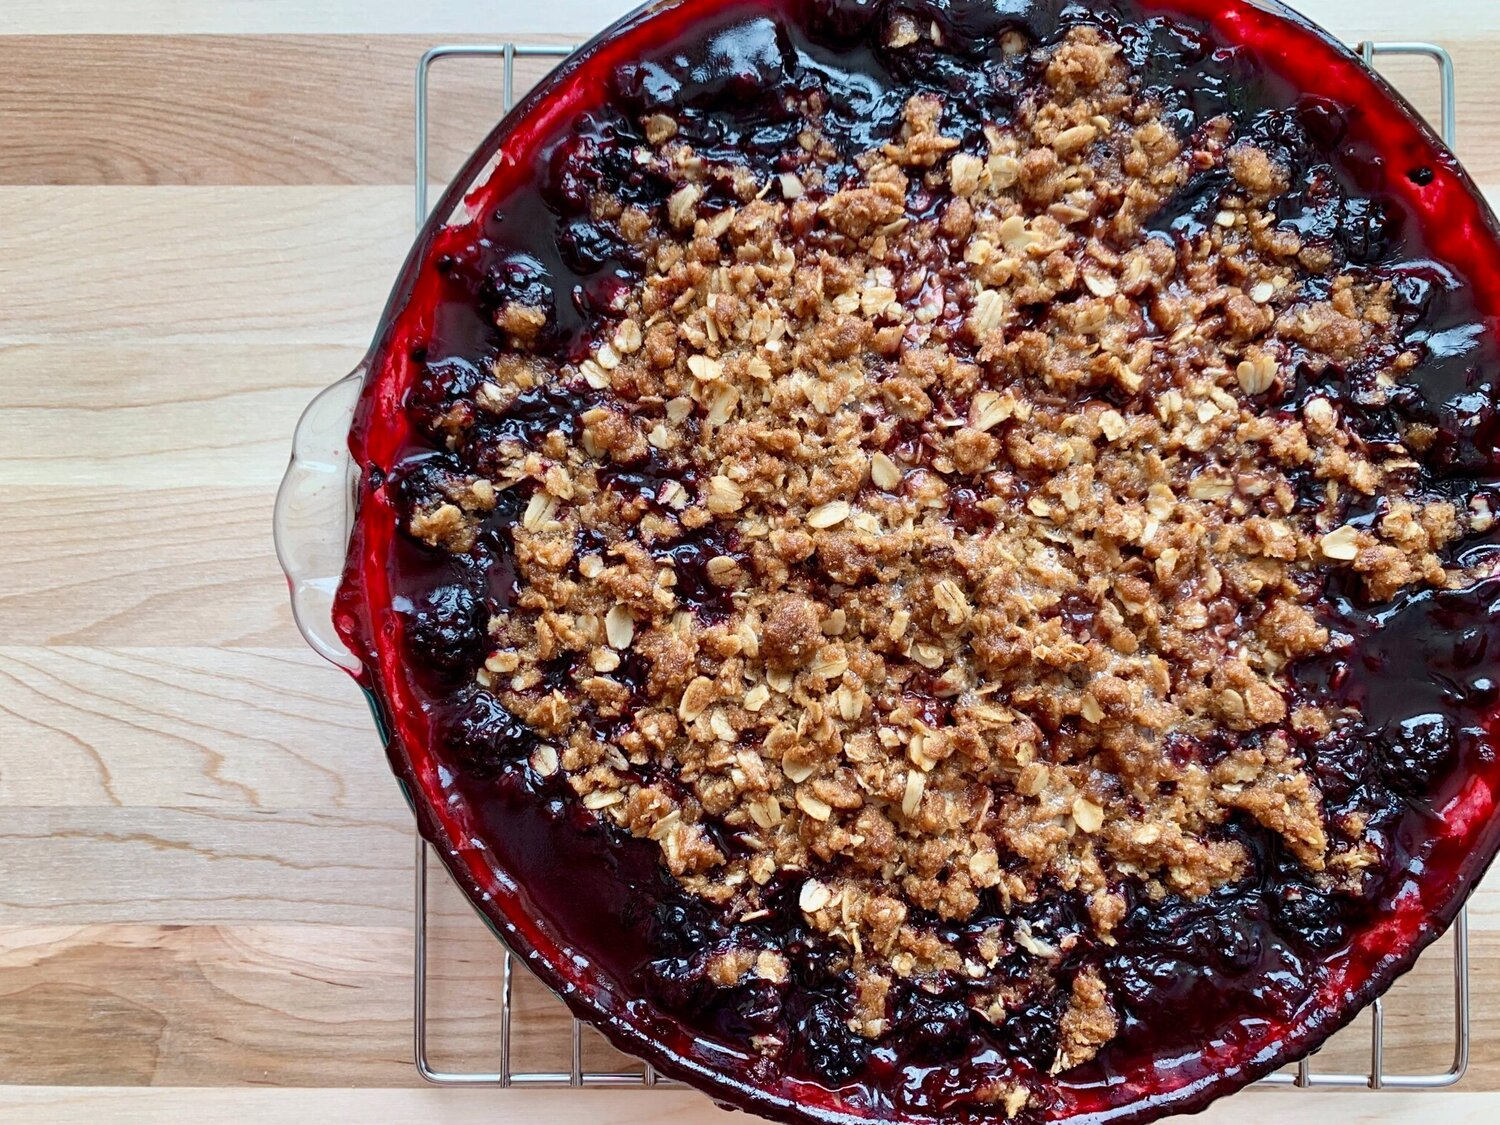 7. Bake approximately 60 minutes until the topping is browned and berry filling is bubbling. A baking sheet may be placed on the rack below to catch any drippings. -